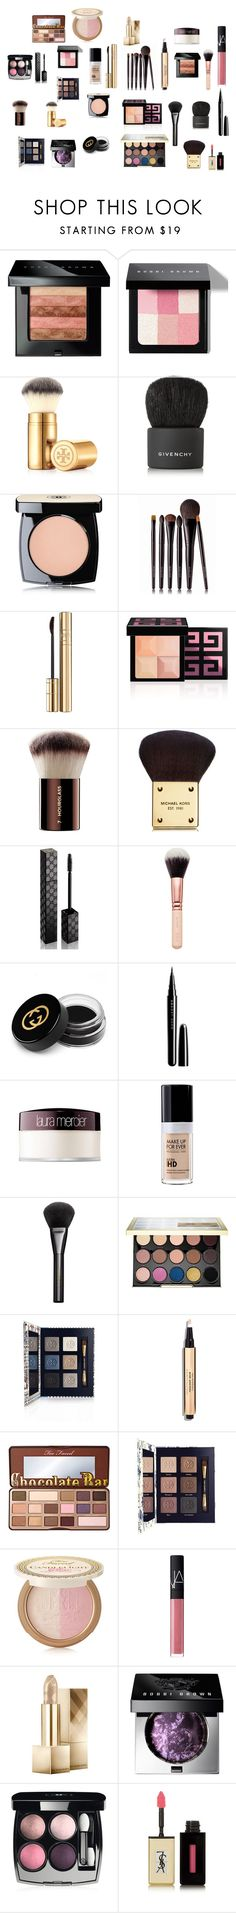 """""""Makeup Wishlist #2"""" by inspiration-center ❤ liked on Polyvore featuring beauty, Bobbi Brown Cosmetics, Tory Burch, Givenchy, Chanel, Laura Mercier, Dolce&Gabbana, Hourglass Cosmetics, Michael Kors and Gucci"""